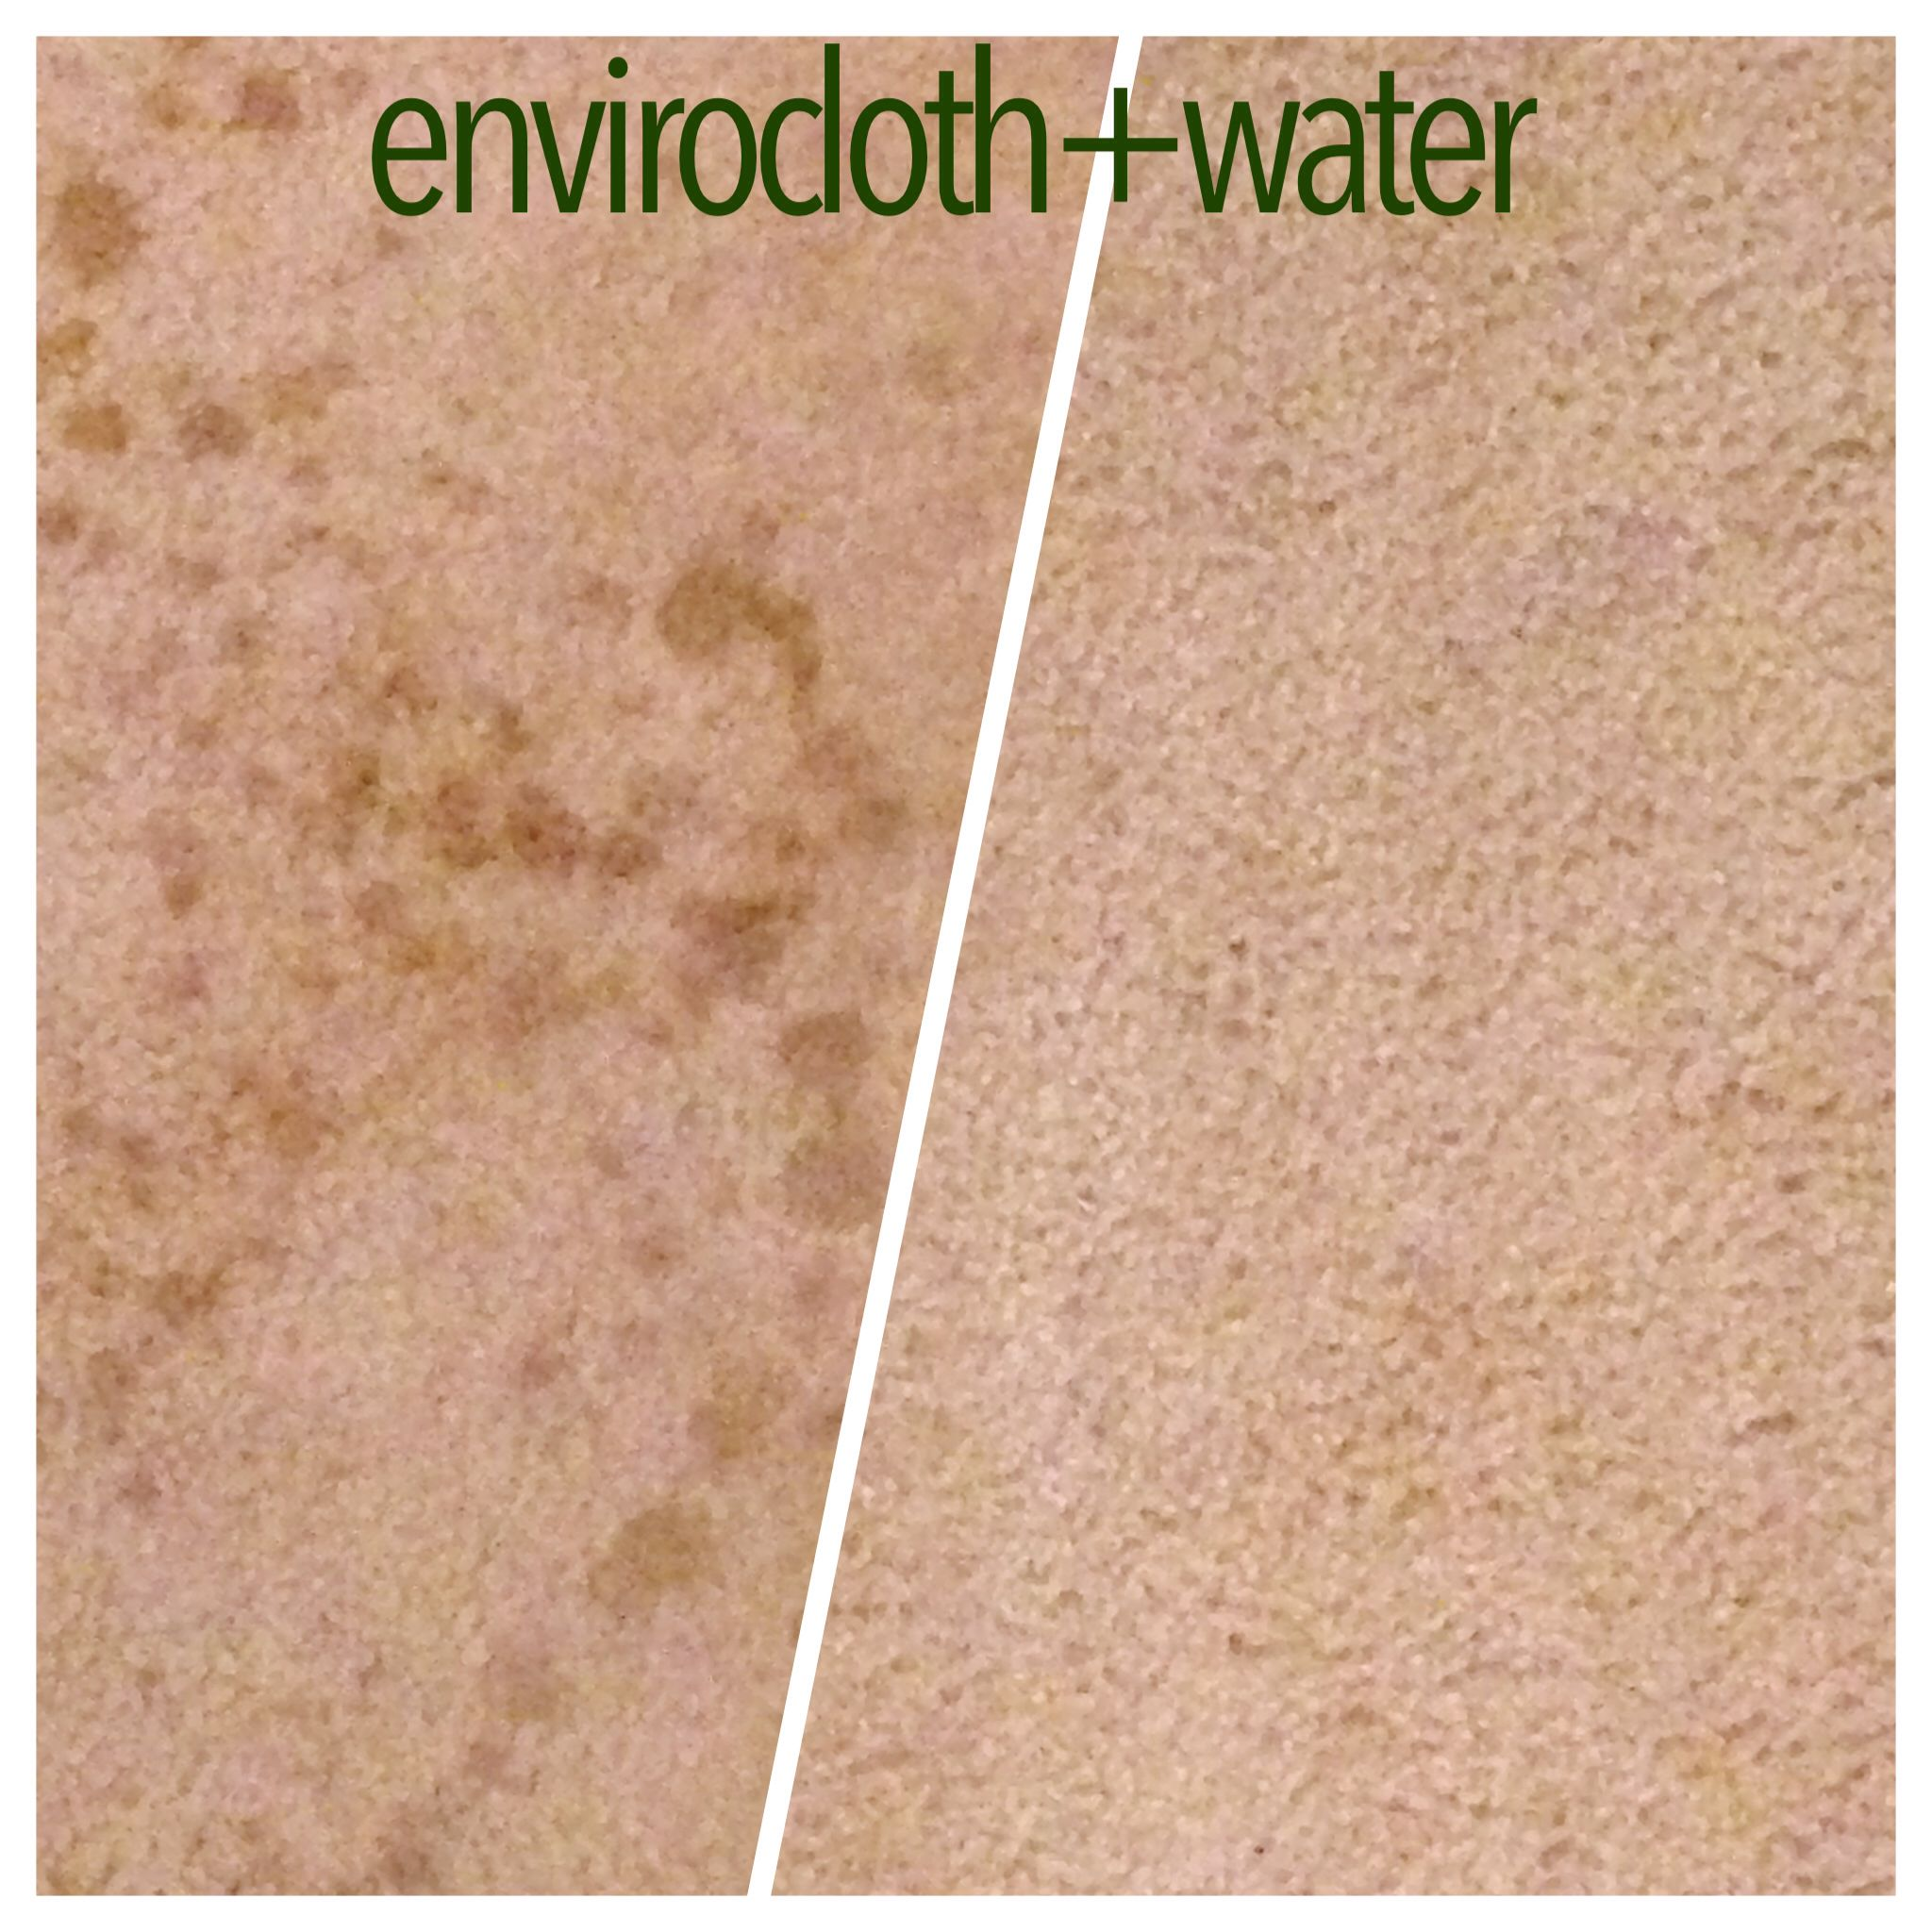 get tough stains out of carpet using your norwex enviro cloth and